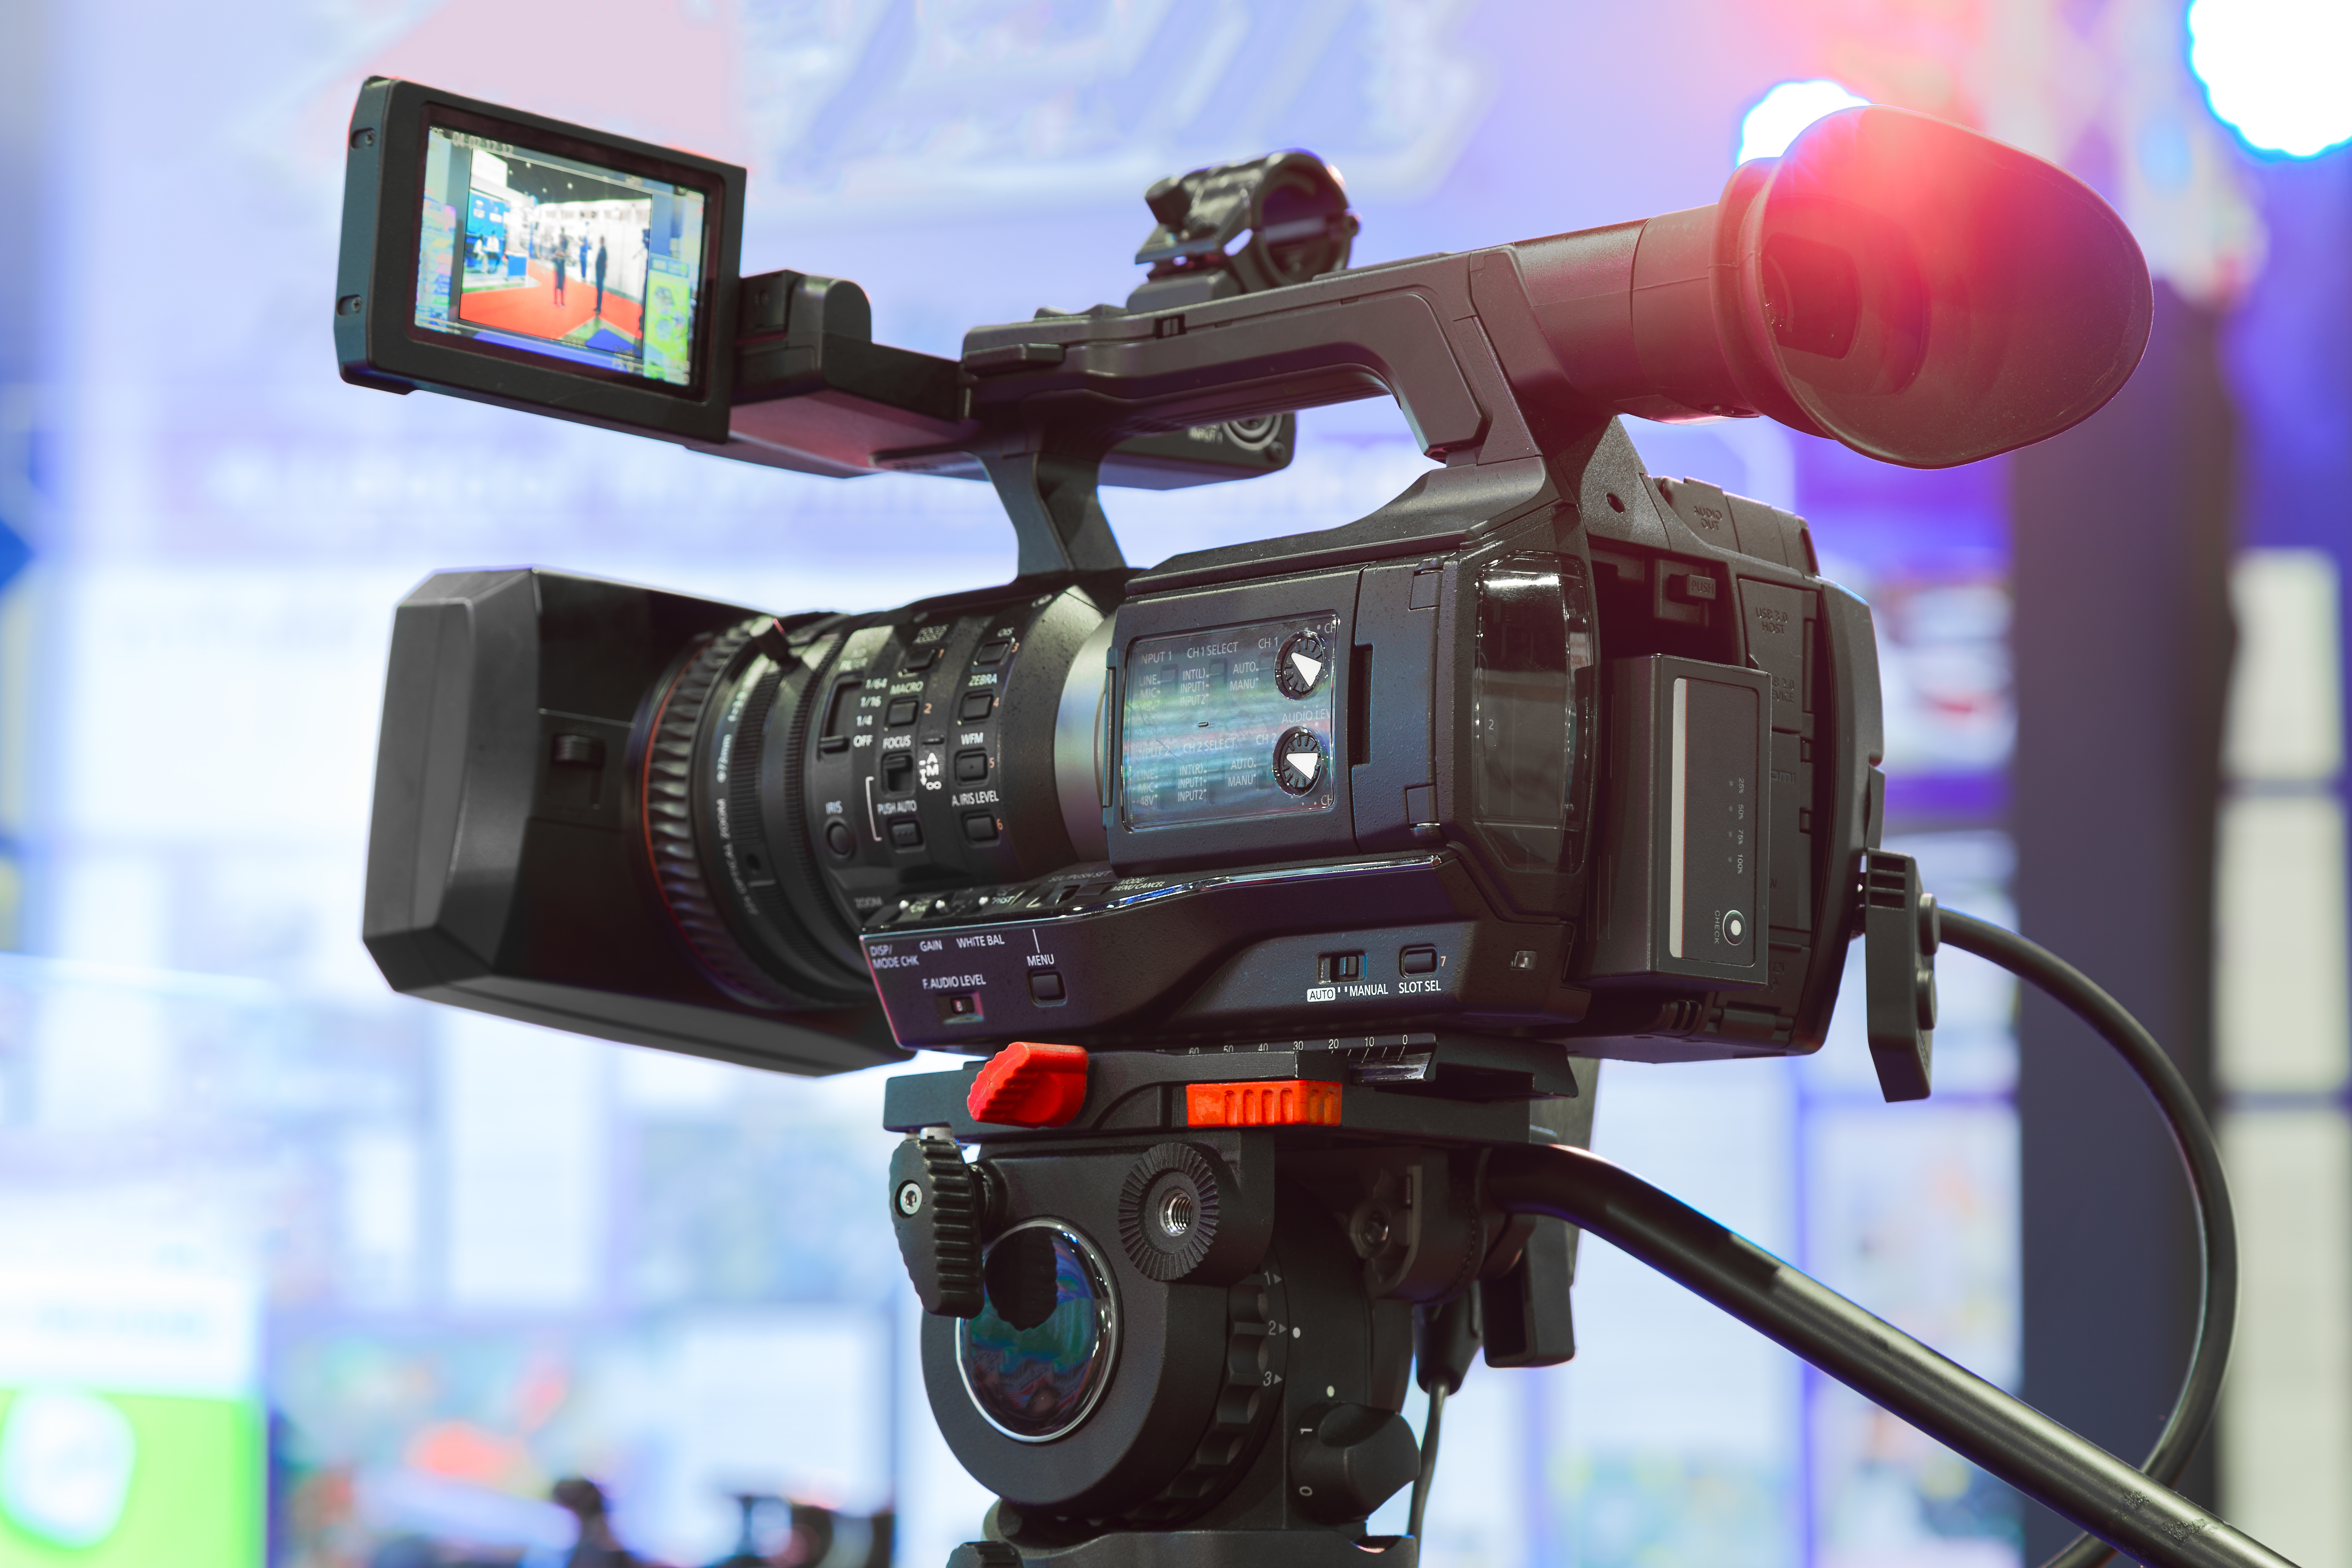 Professional videographers in Lexington, Kentucky